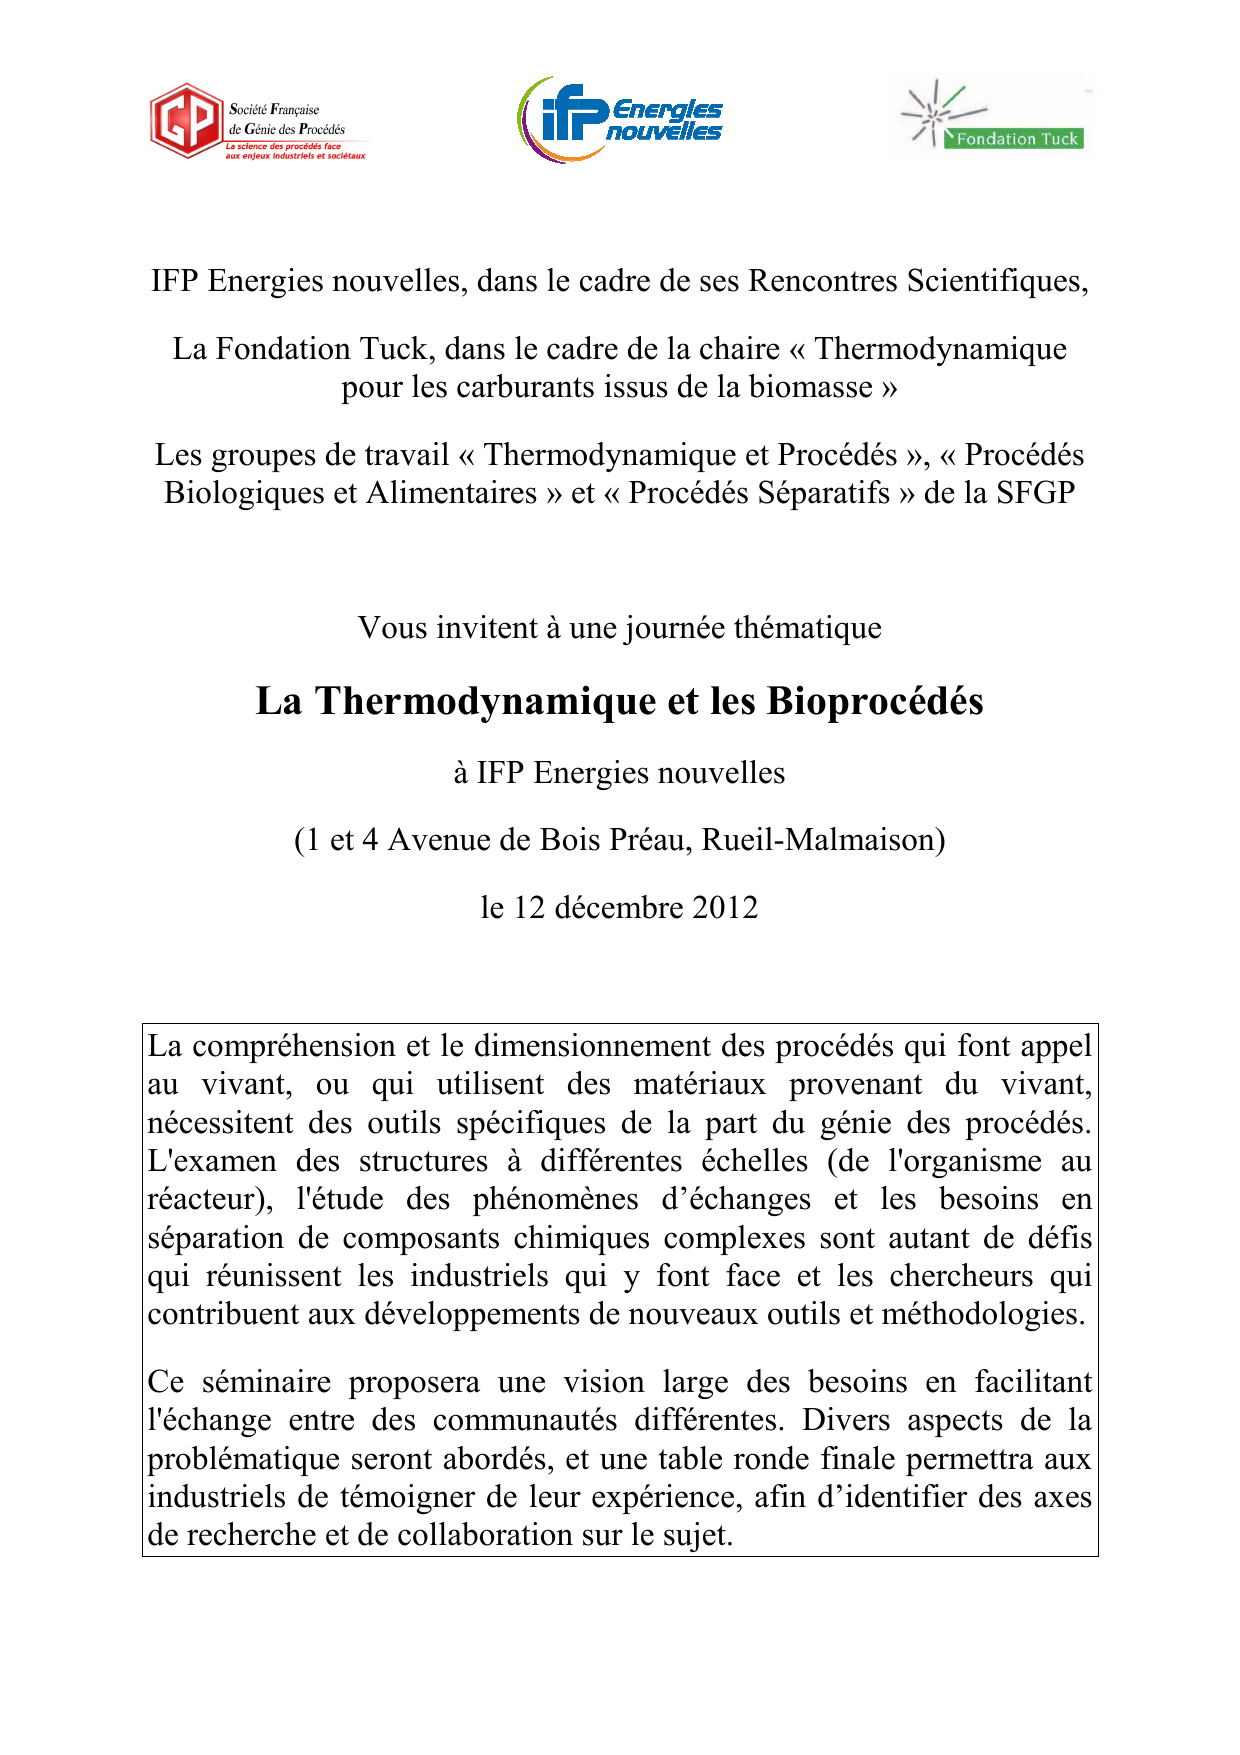 Oil & Gas Science and Technology / Revue d'IFP Energies nouvelles